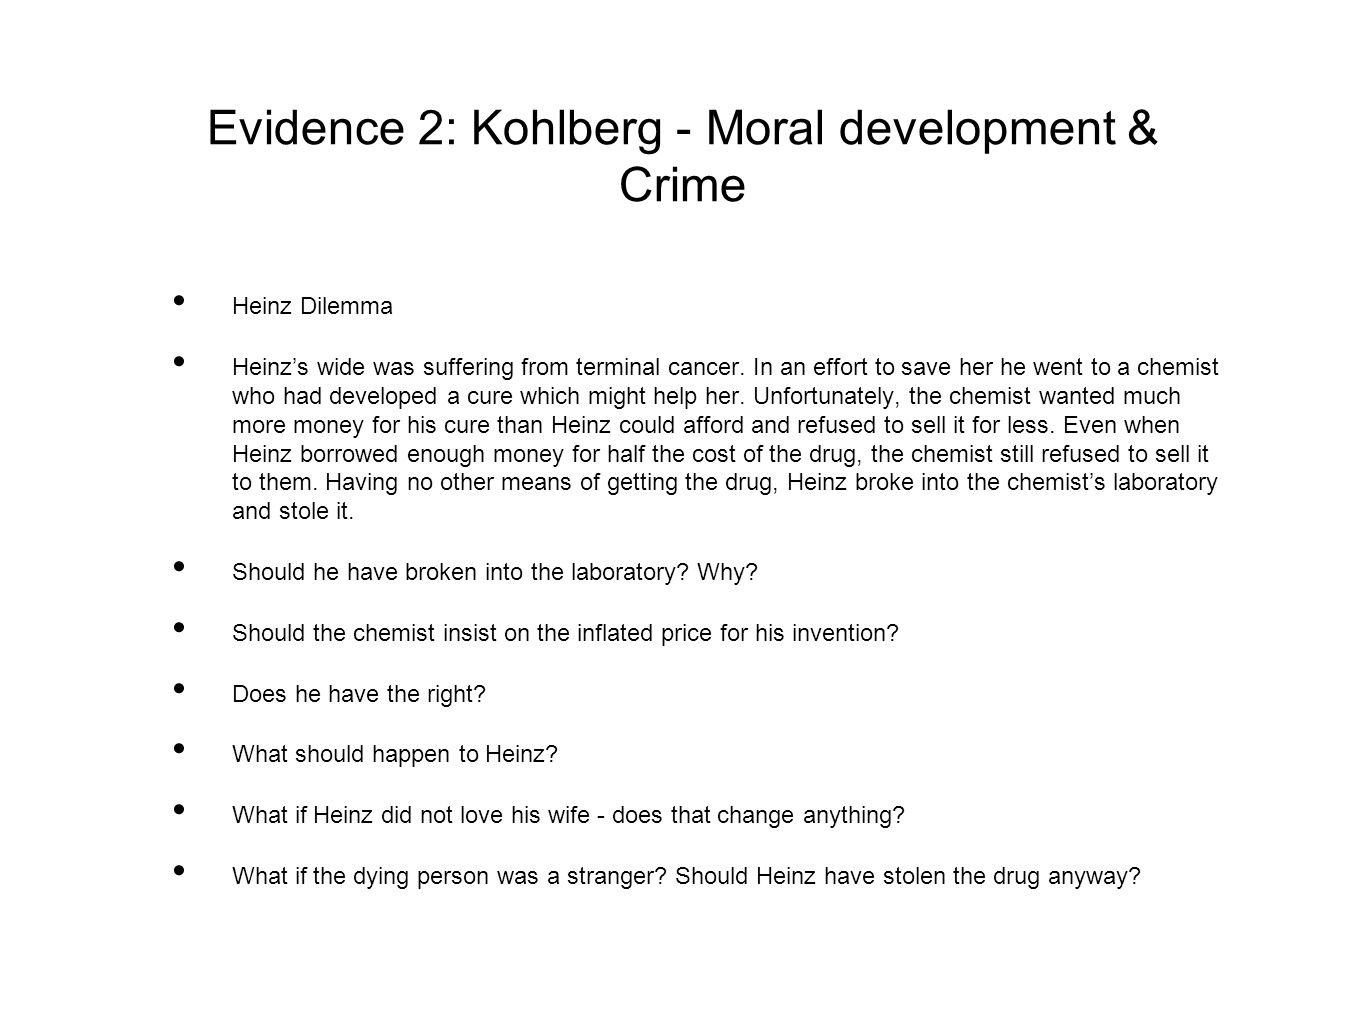 Evidence 2: Kohlberg - Moral development & Crime Heinz Dilemma Heinz's wide was suffering from terminal cancer. In an effort to save her he went to a